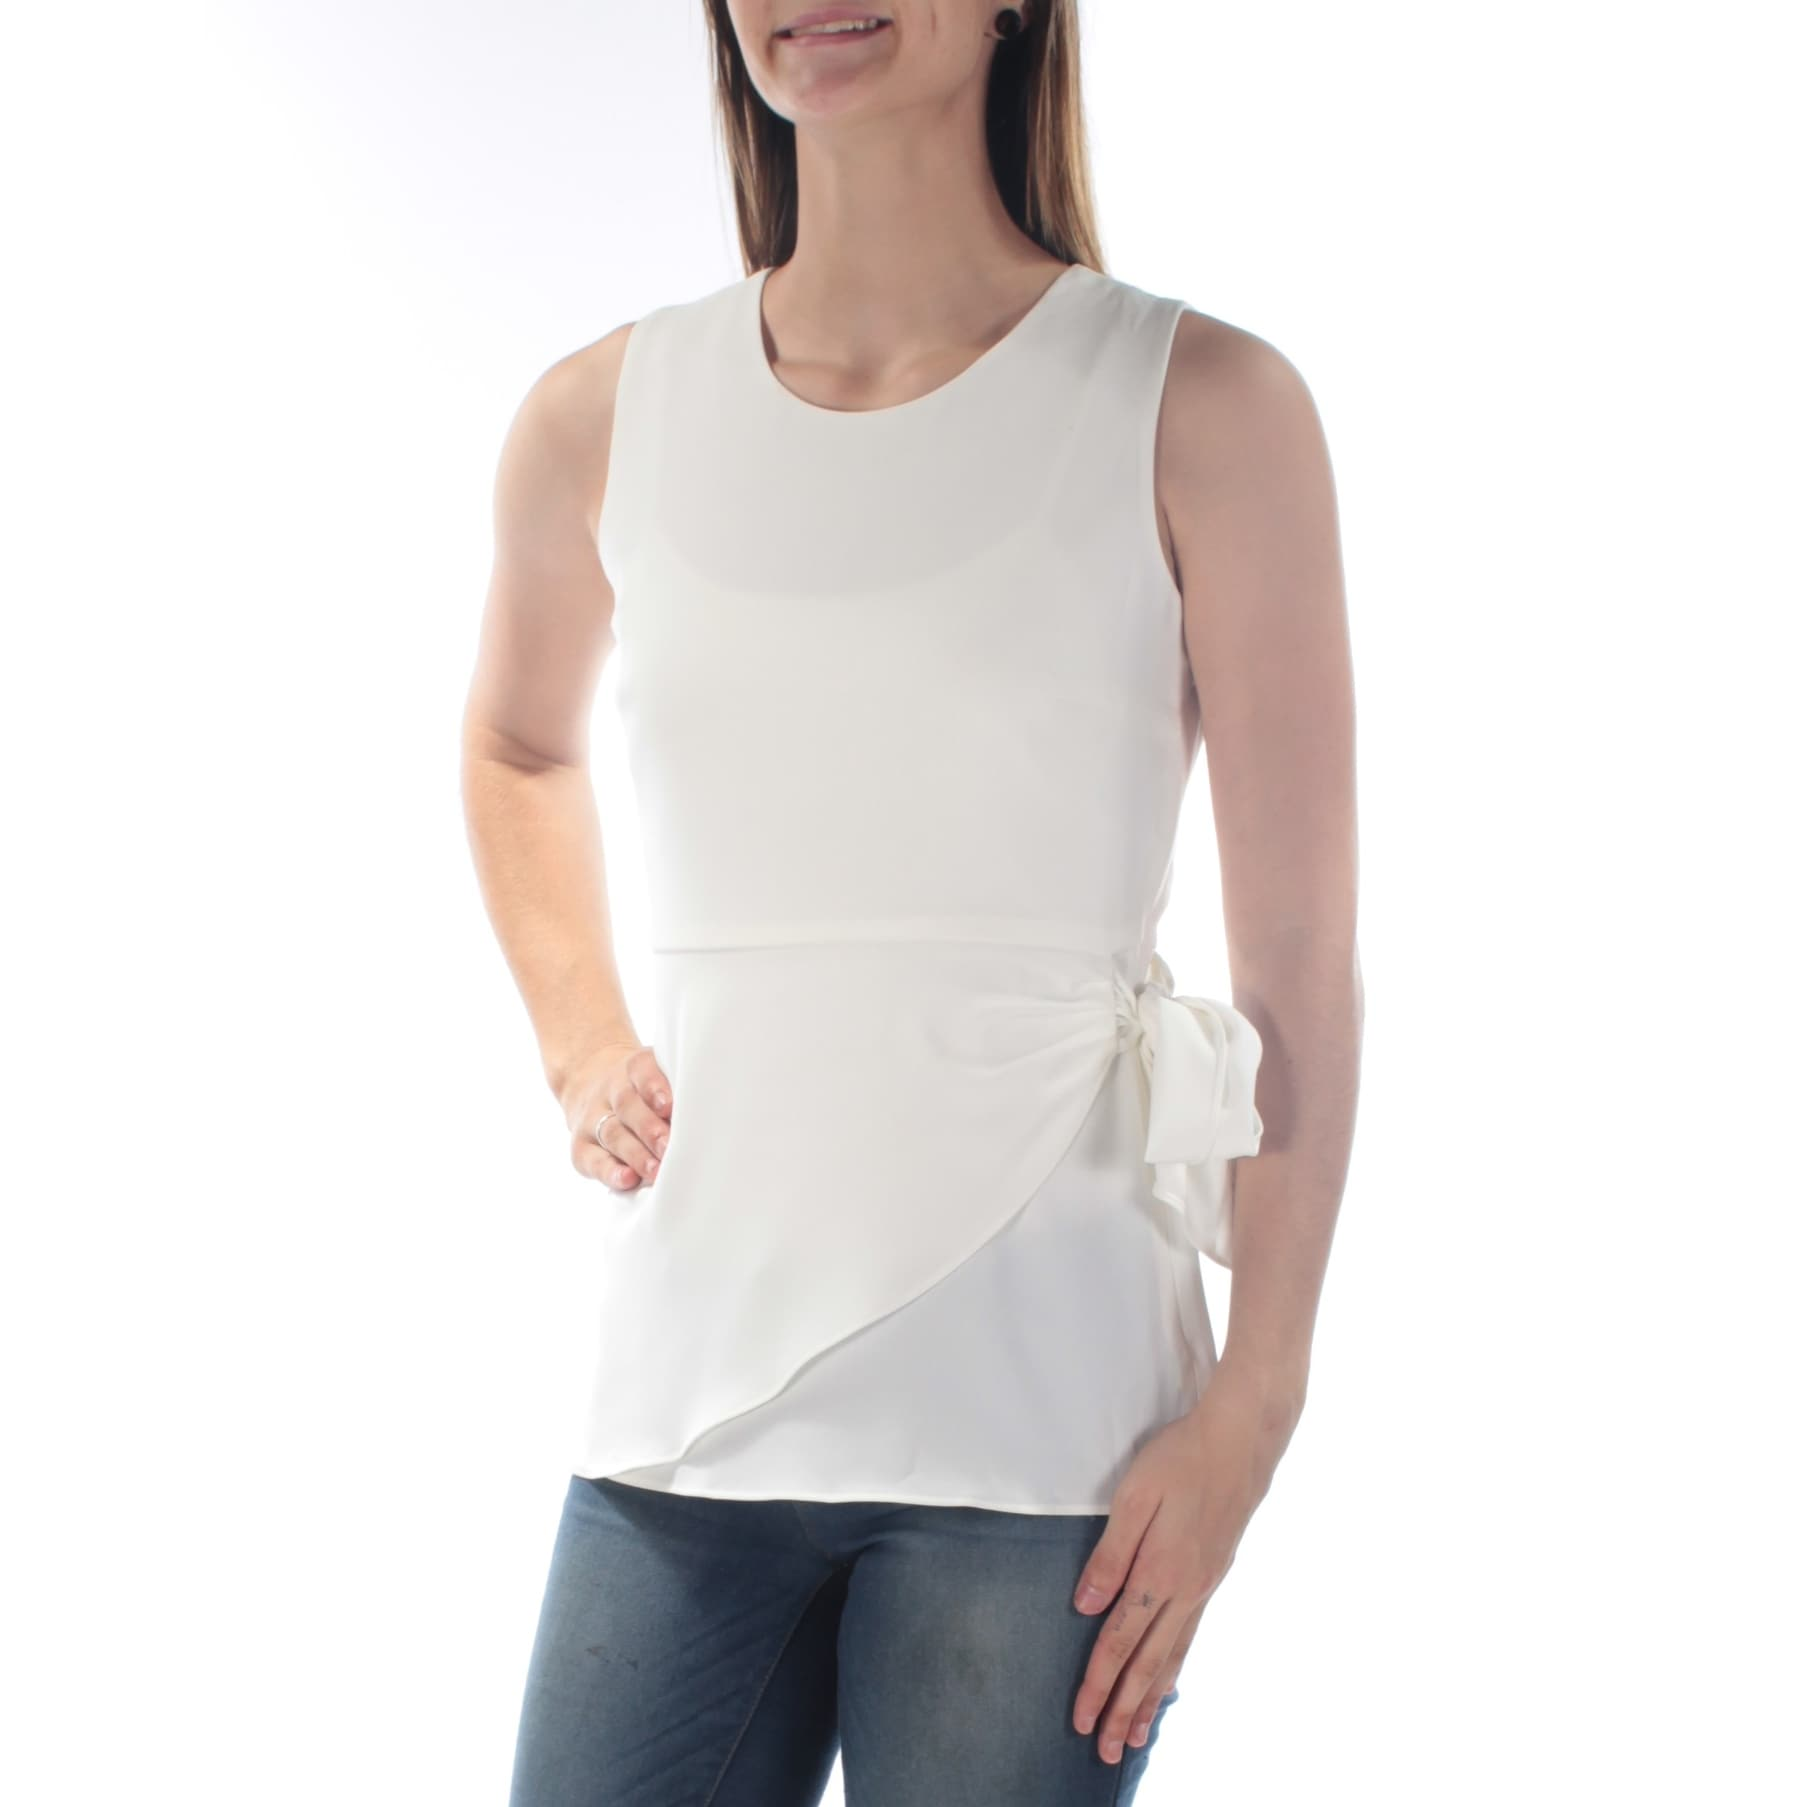 58c8d80716fa4 Shop CALVIN KLEIN Womens White Sleeveless Jewel Neck Wear To Work Top Size   4 - On Sale - Free Shipping On Orders Over  45 - Overstock - 21385898